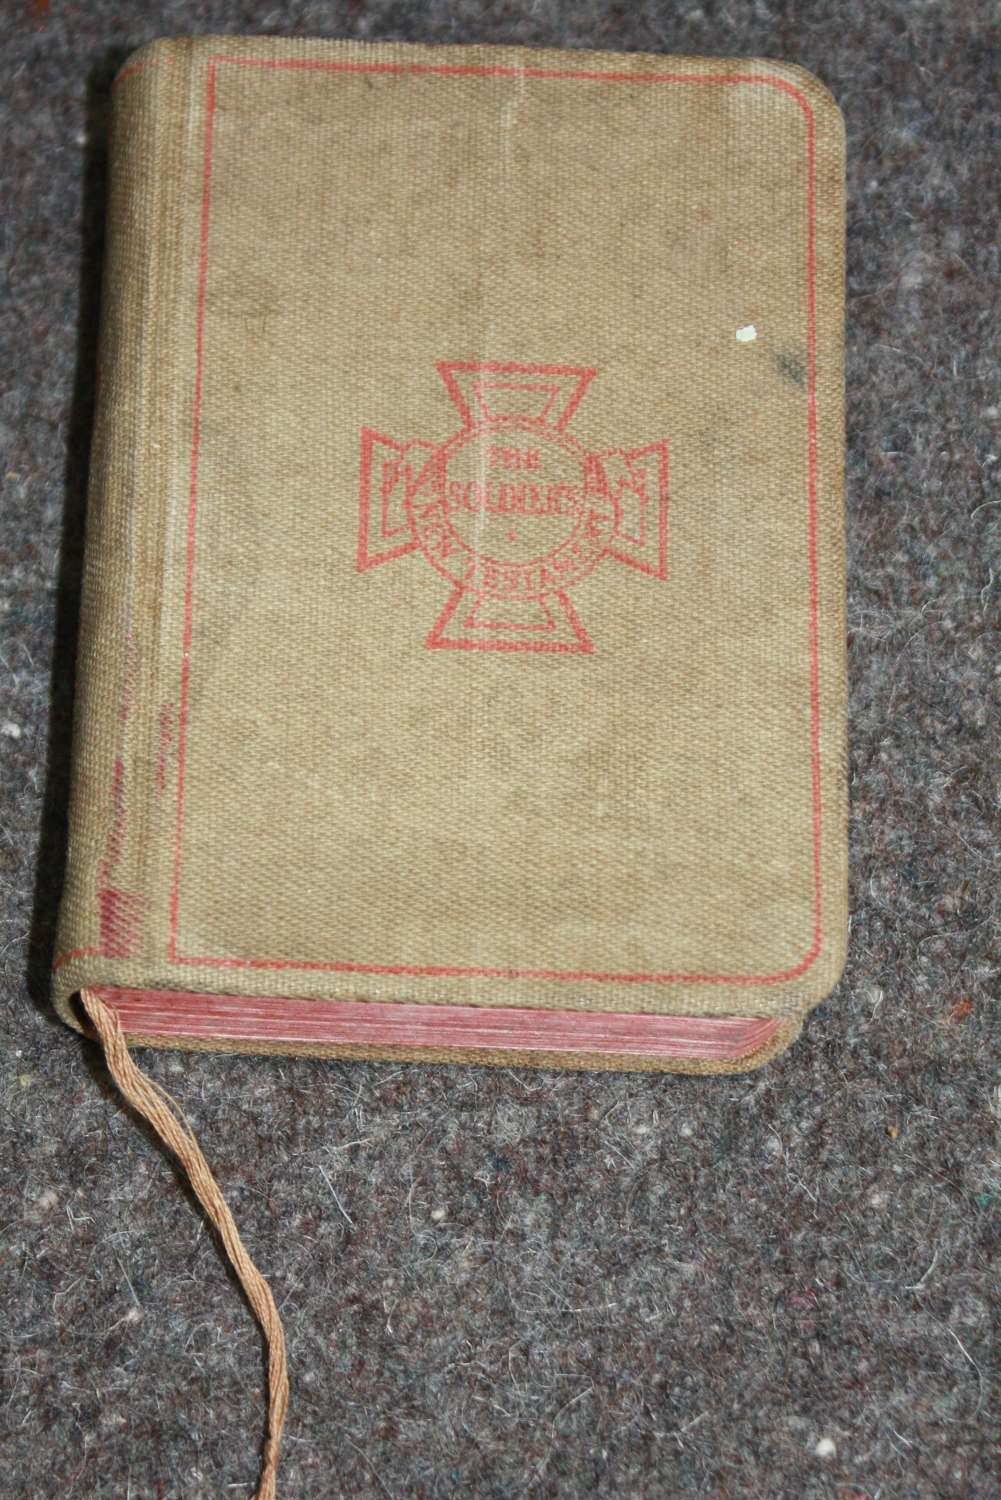 A WWI SOLDIERS NEW TESTAMENT 1914 DATED